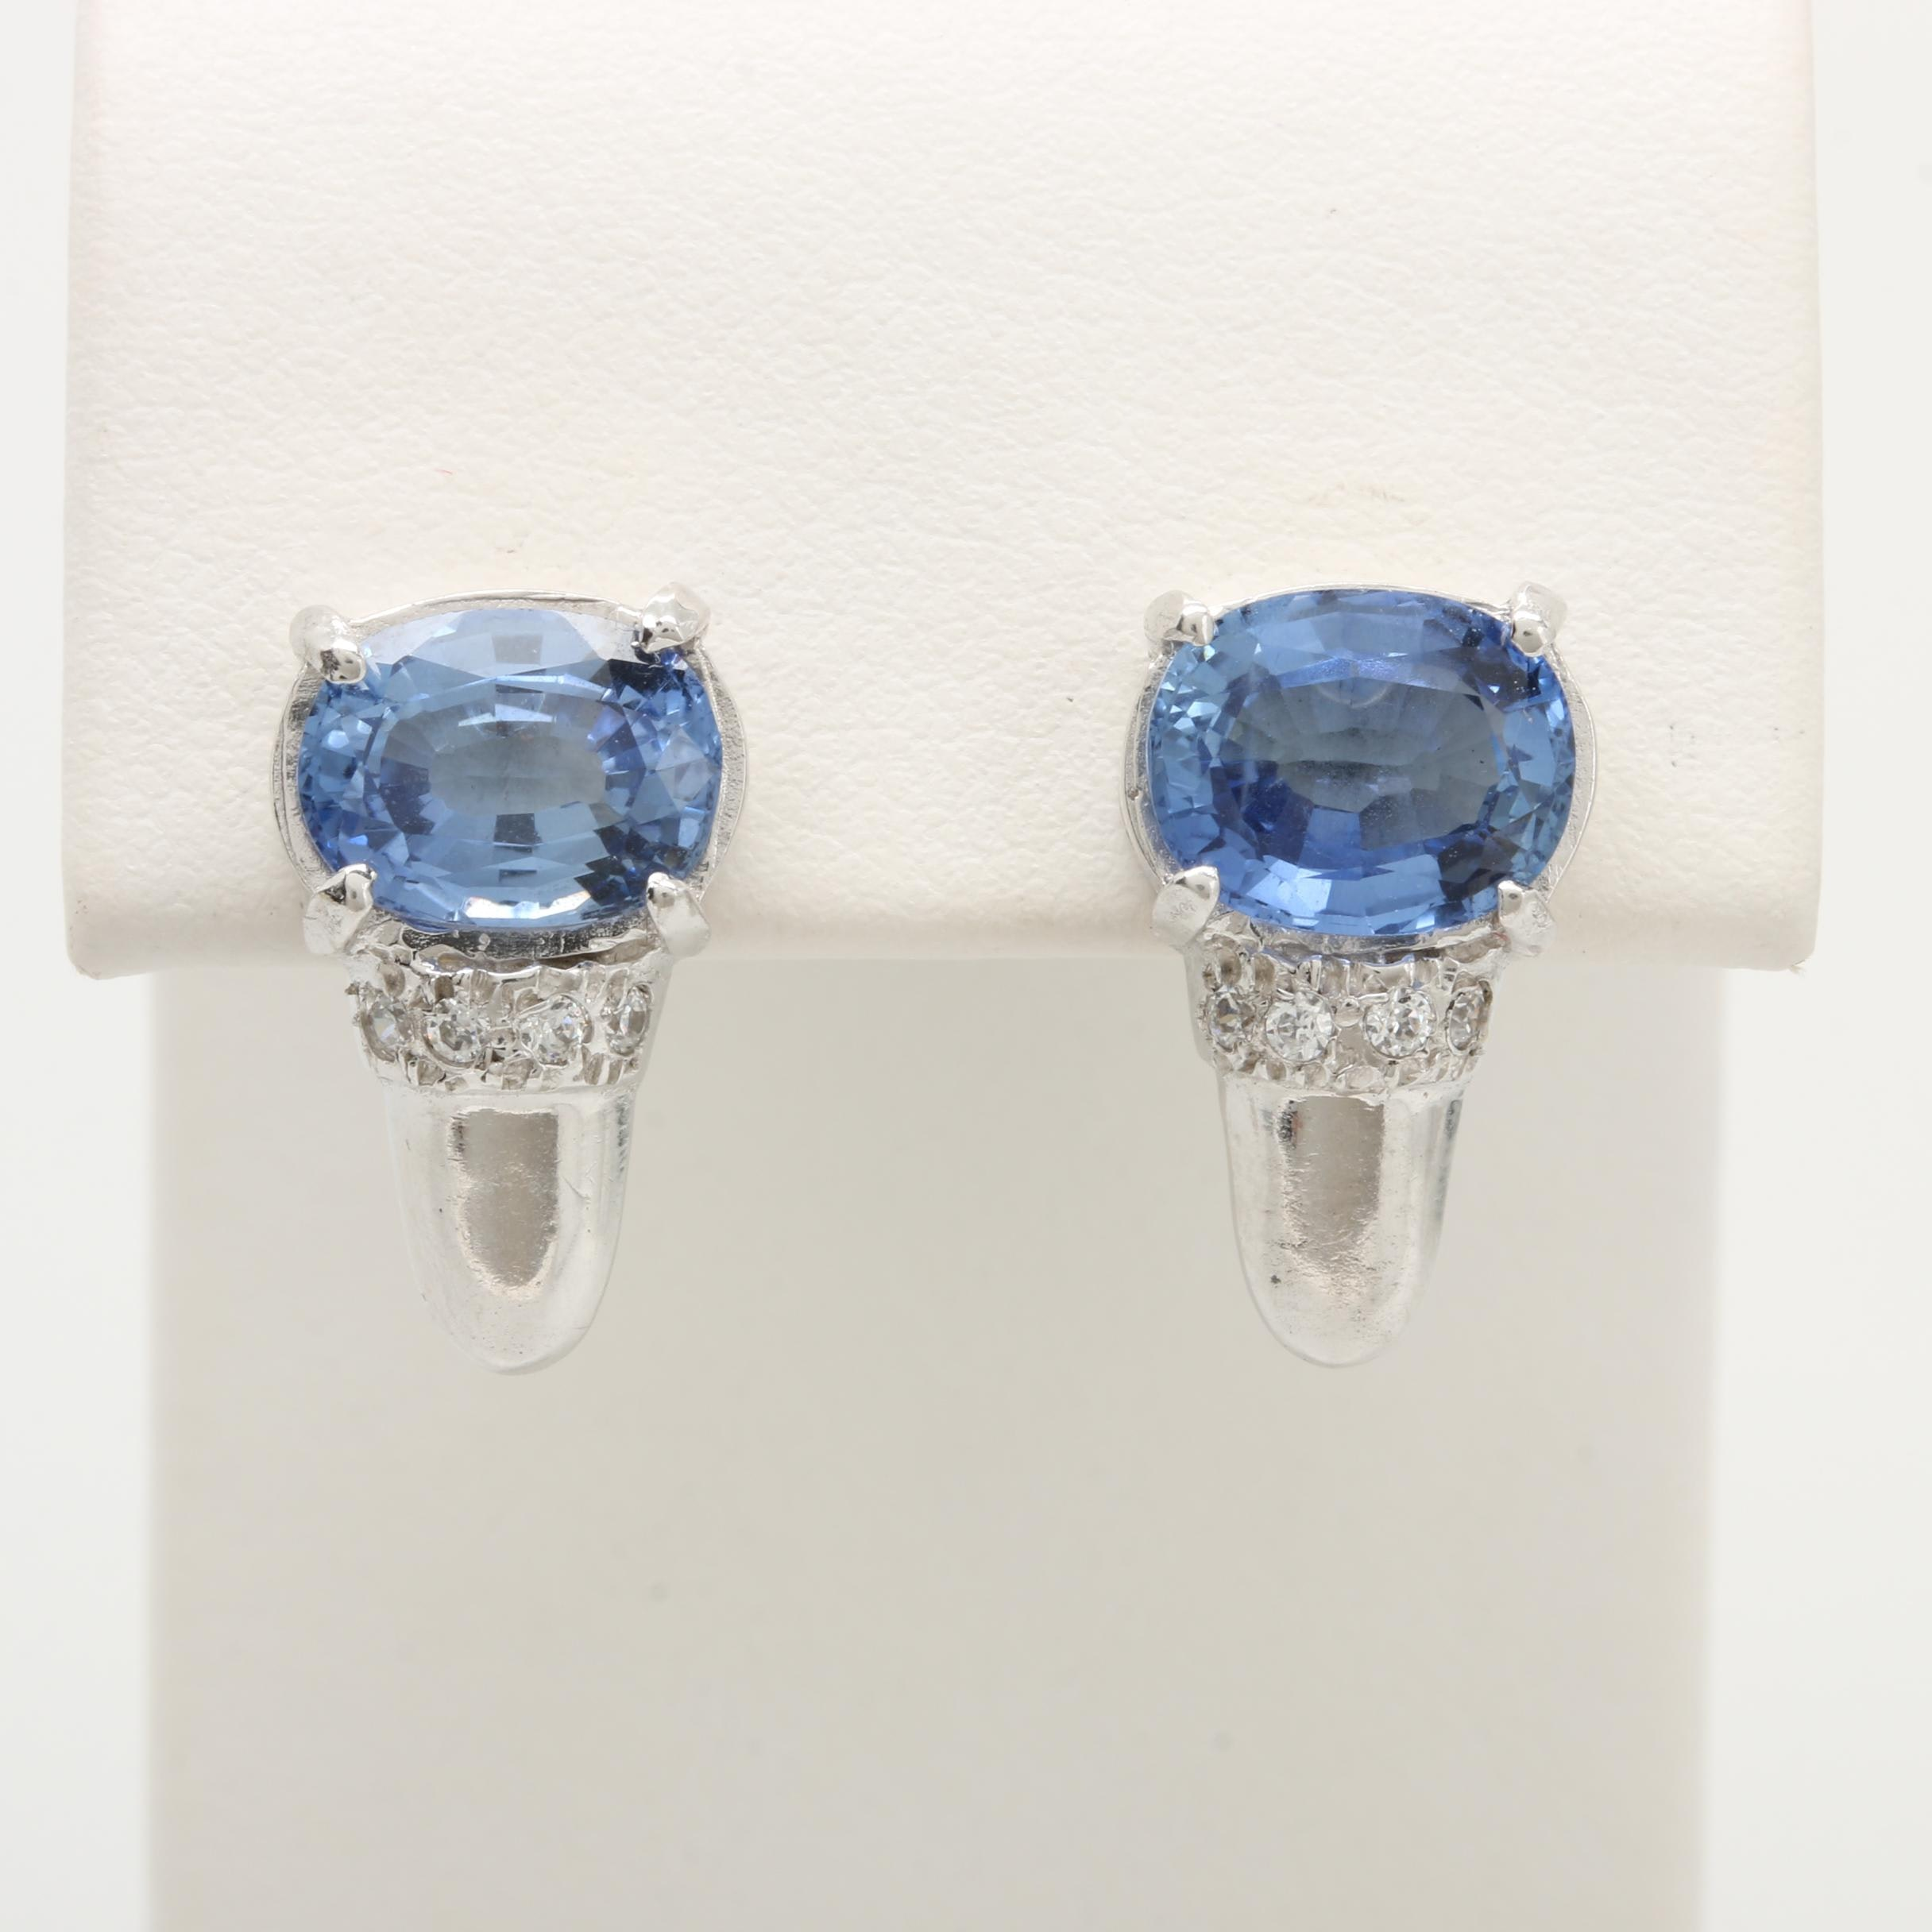 14K White Gold Synthetic Blue Sapphire and Cubic Zirconia Earrings